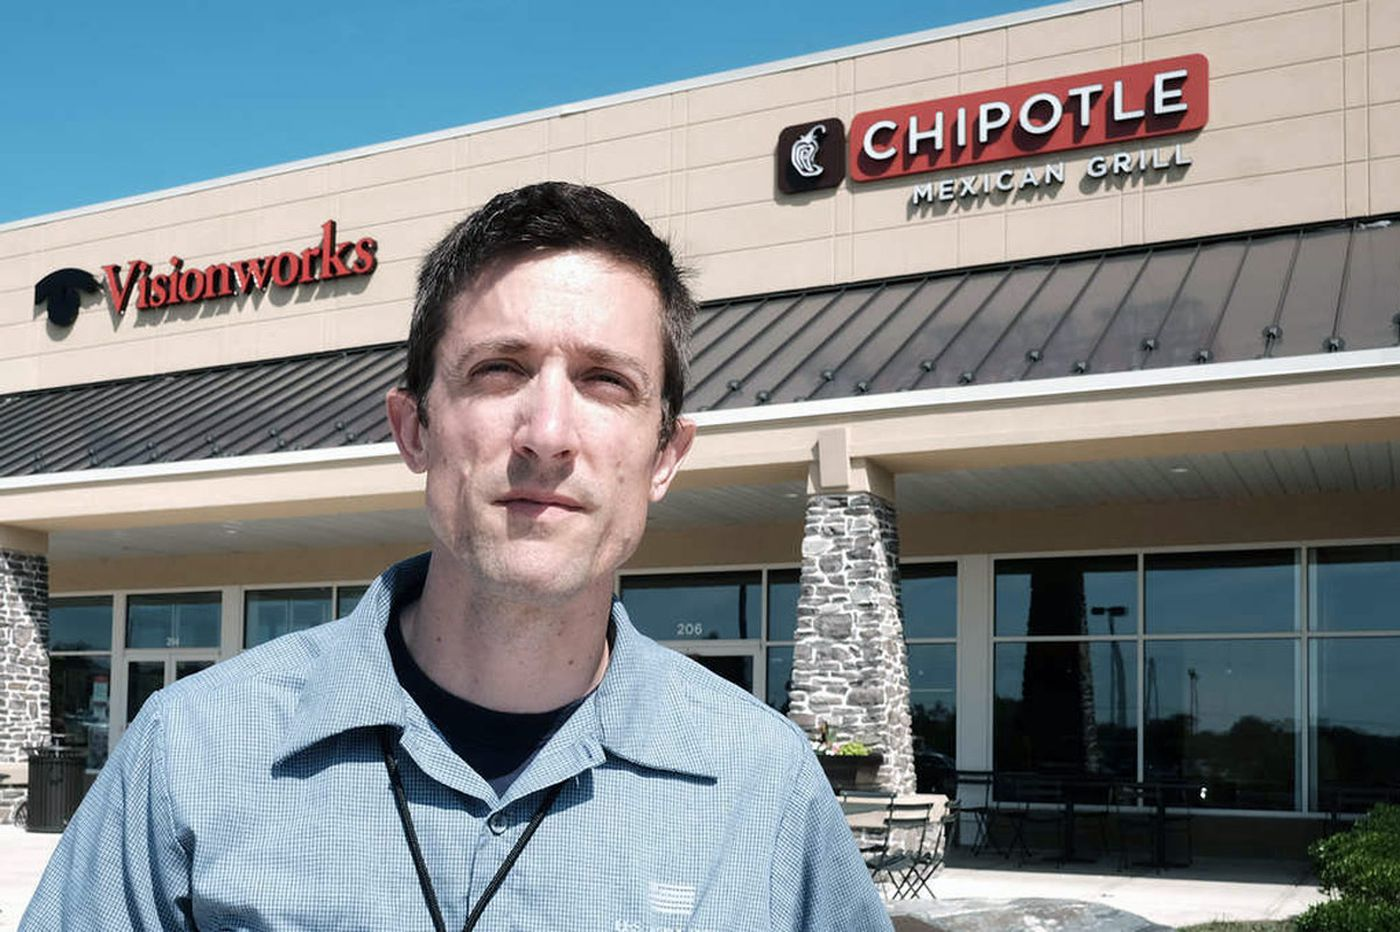 Man fired from Havertown Chipotle for working-condition tweets wins labor ruling